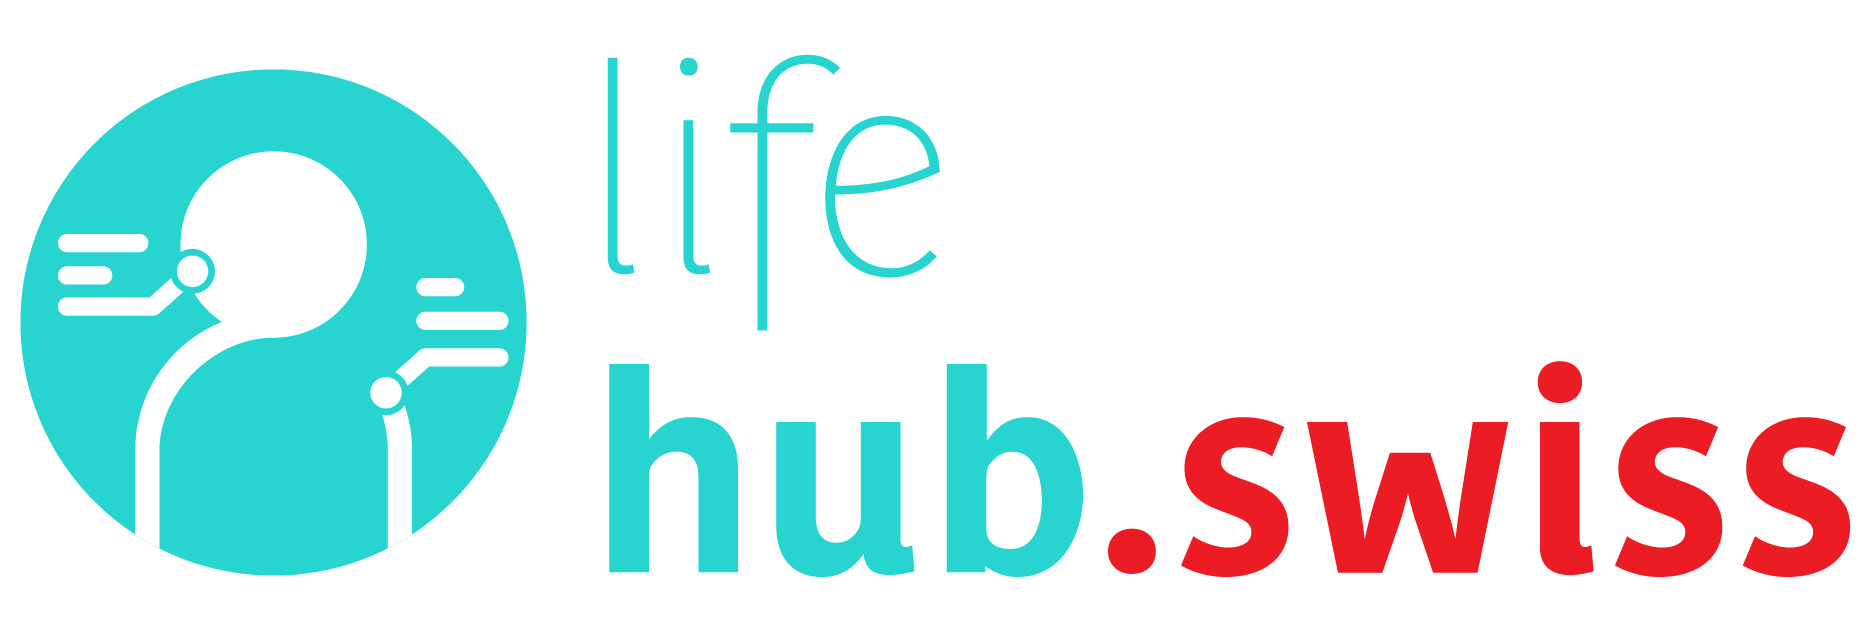 Lifehub.swiss